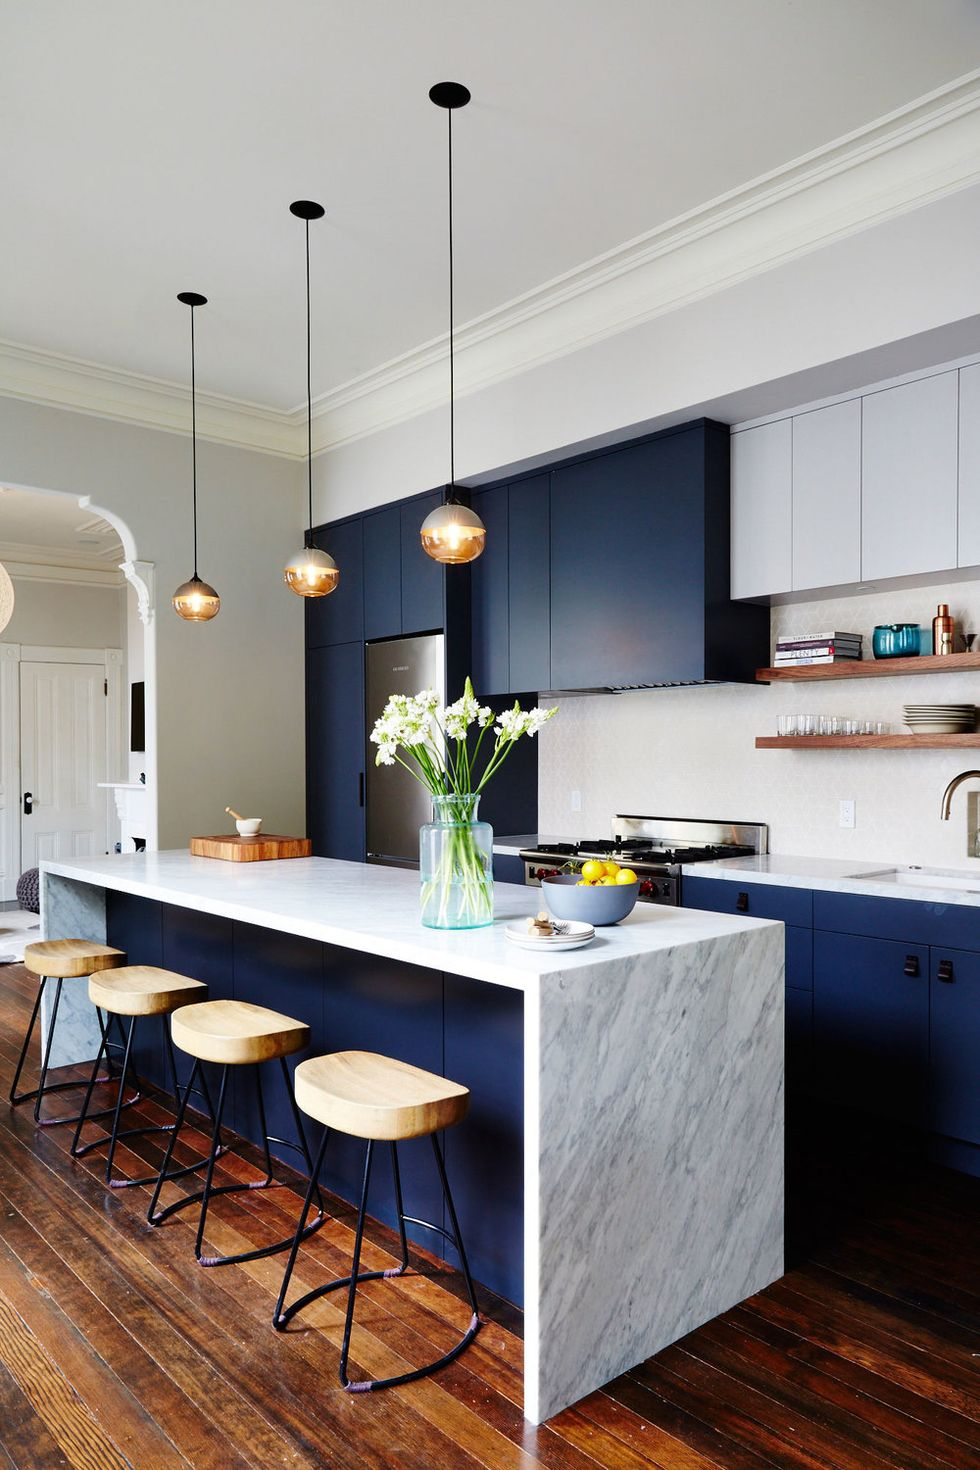 White Cabinets Are Out, and More 2019 Kitchen Trends You Need to Know